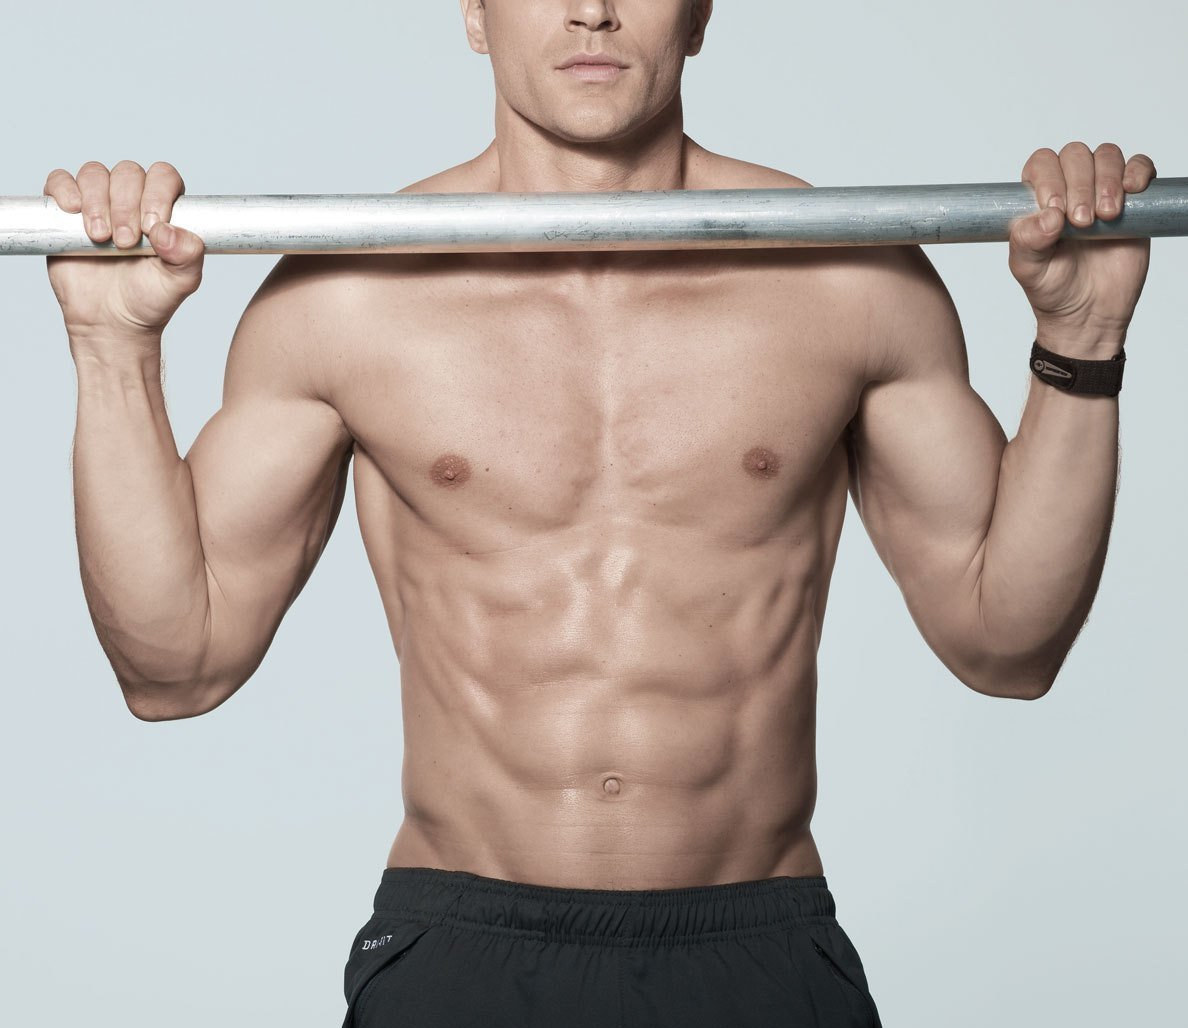 Ripped athlete showing that the best pull-up bar is the one that you train on